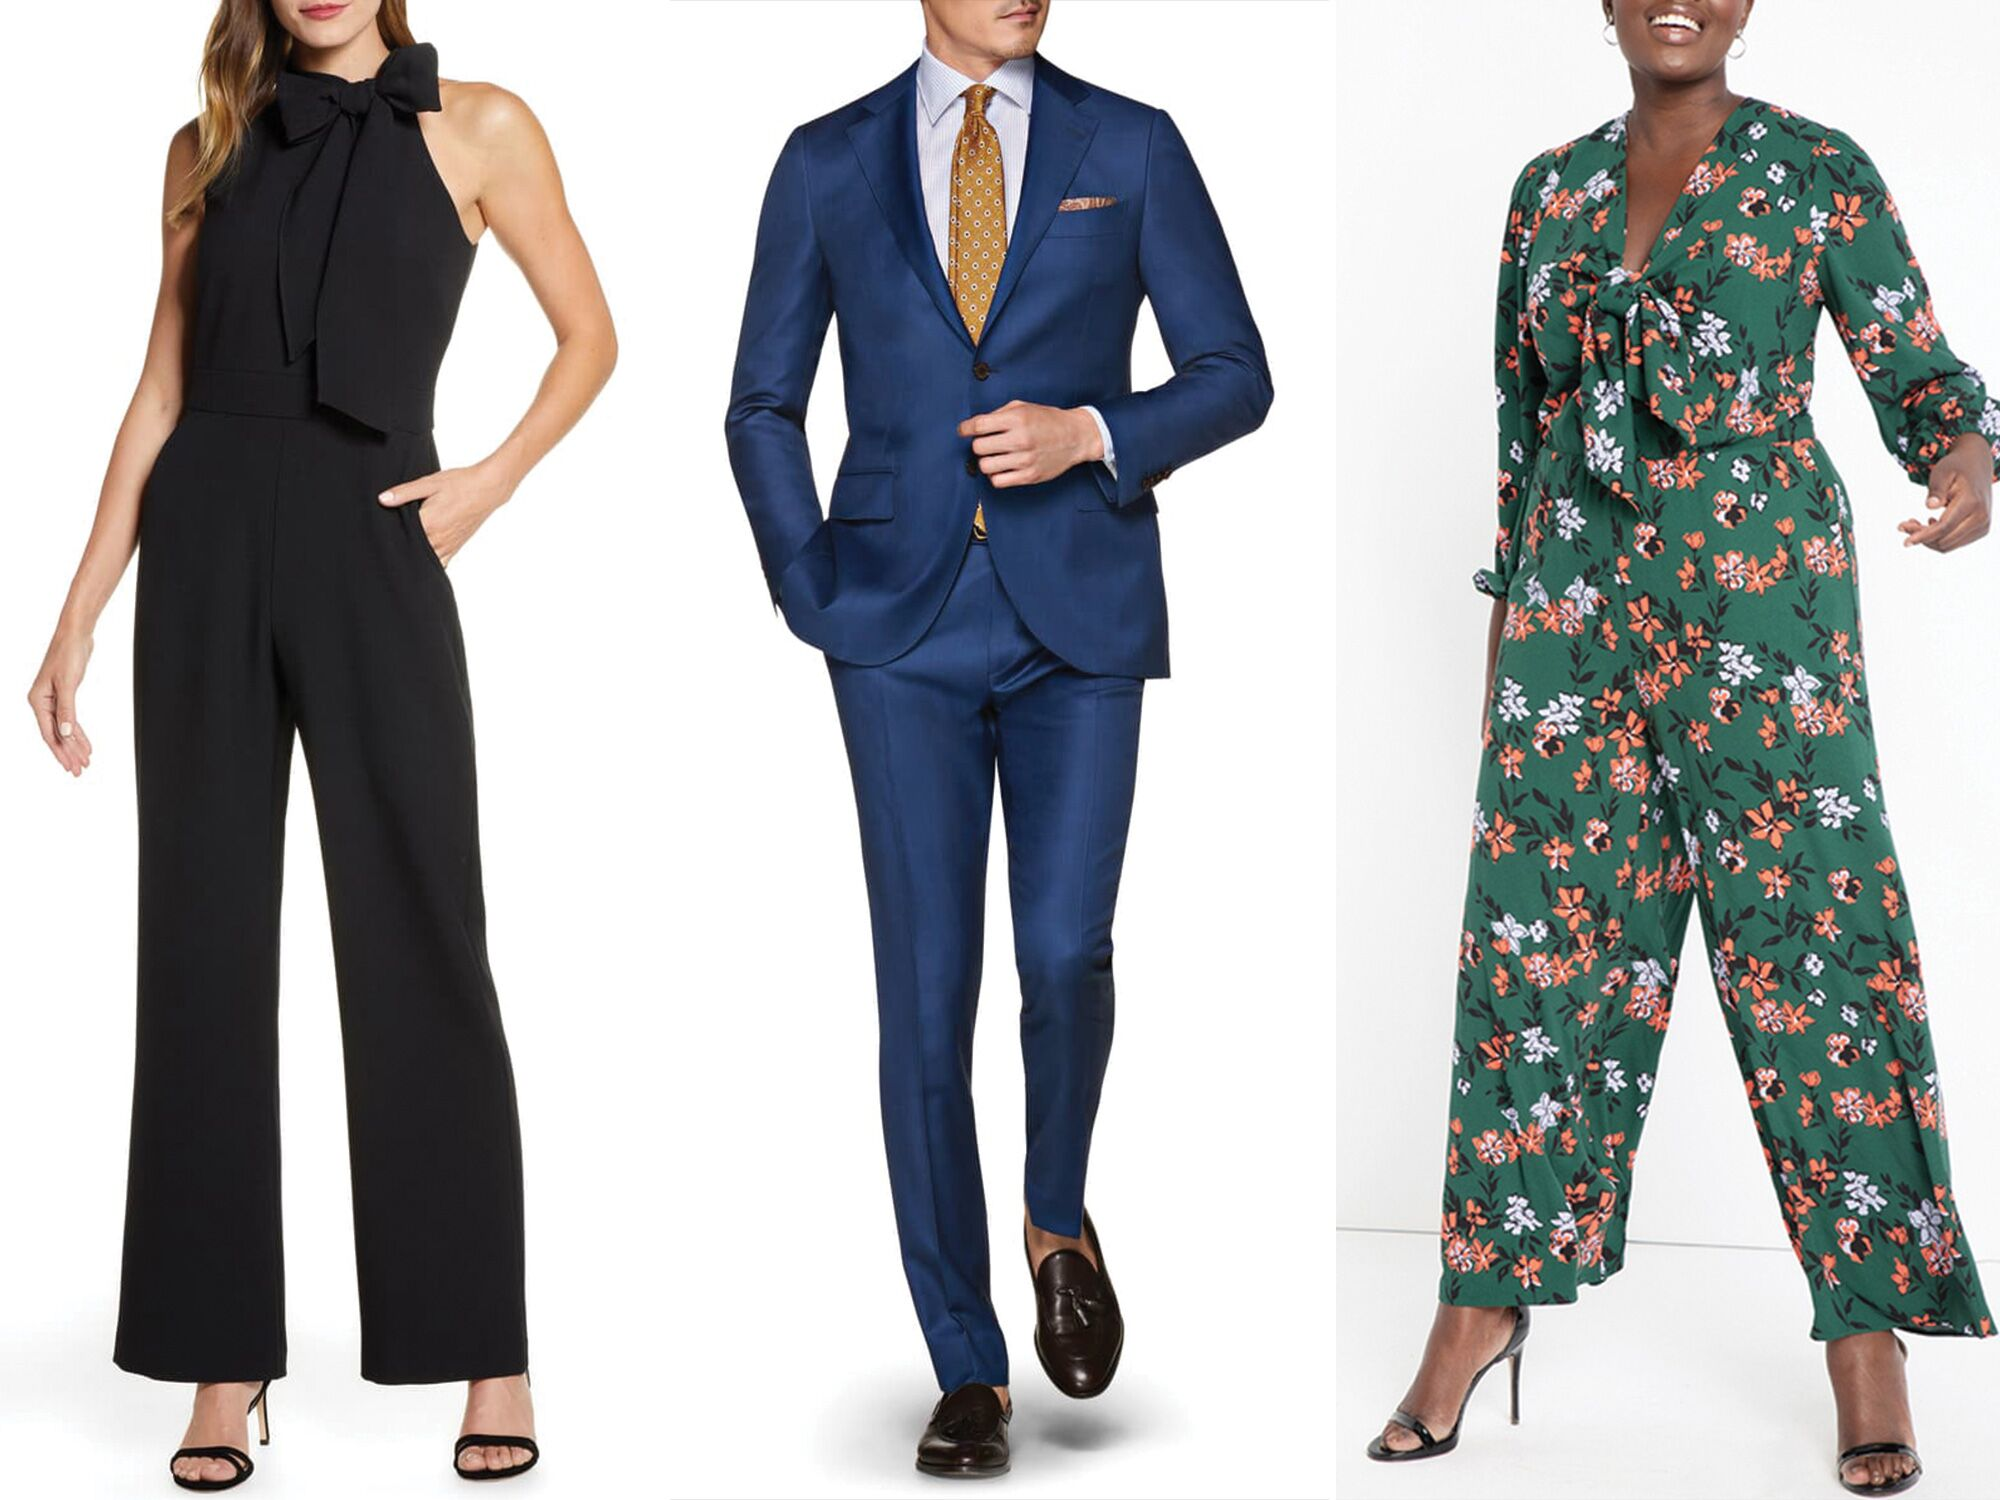 Cocktail Attire Wedding Outfit Inspiration